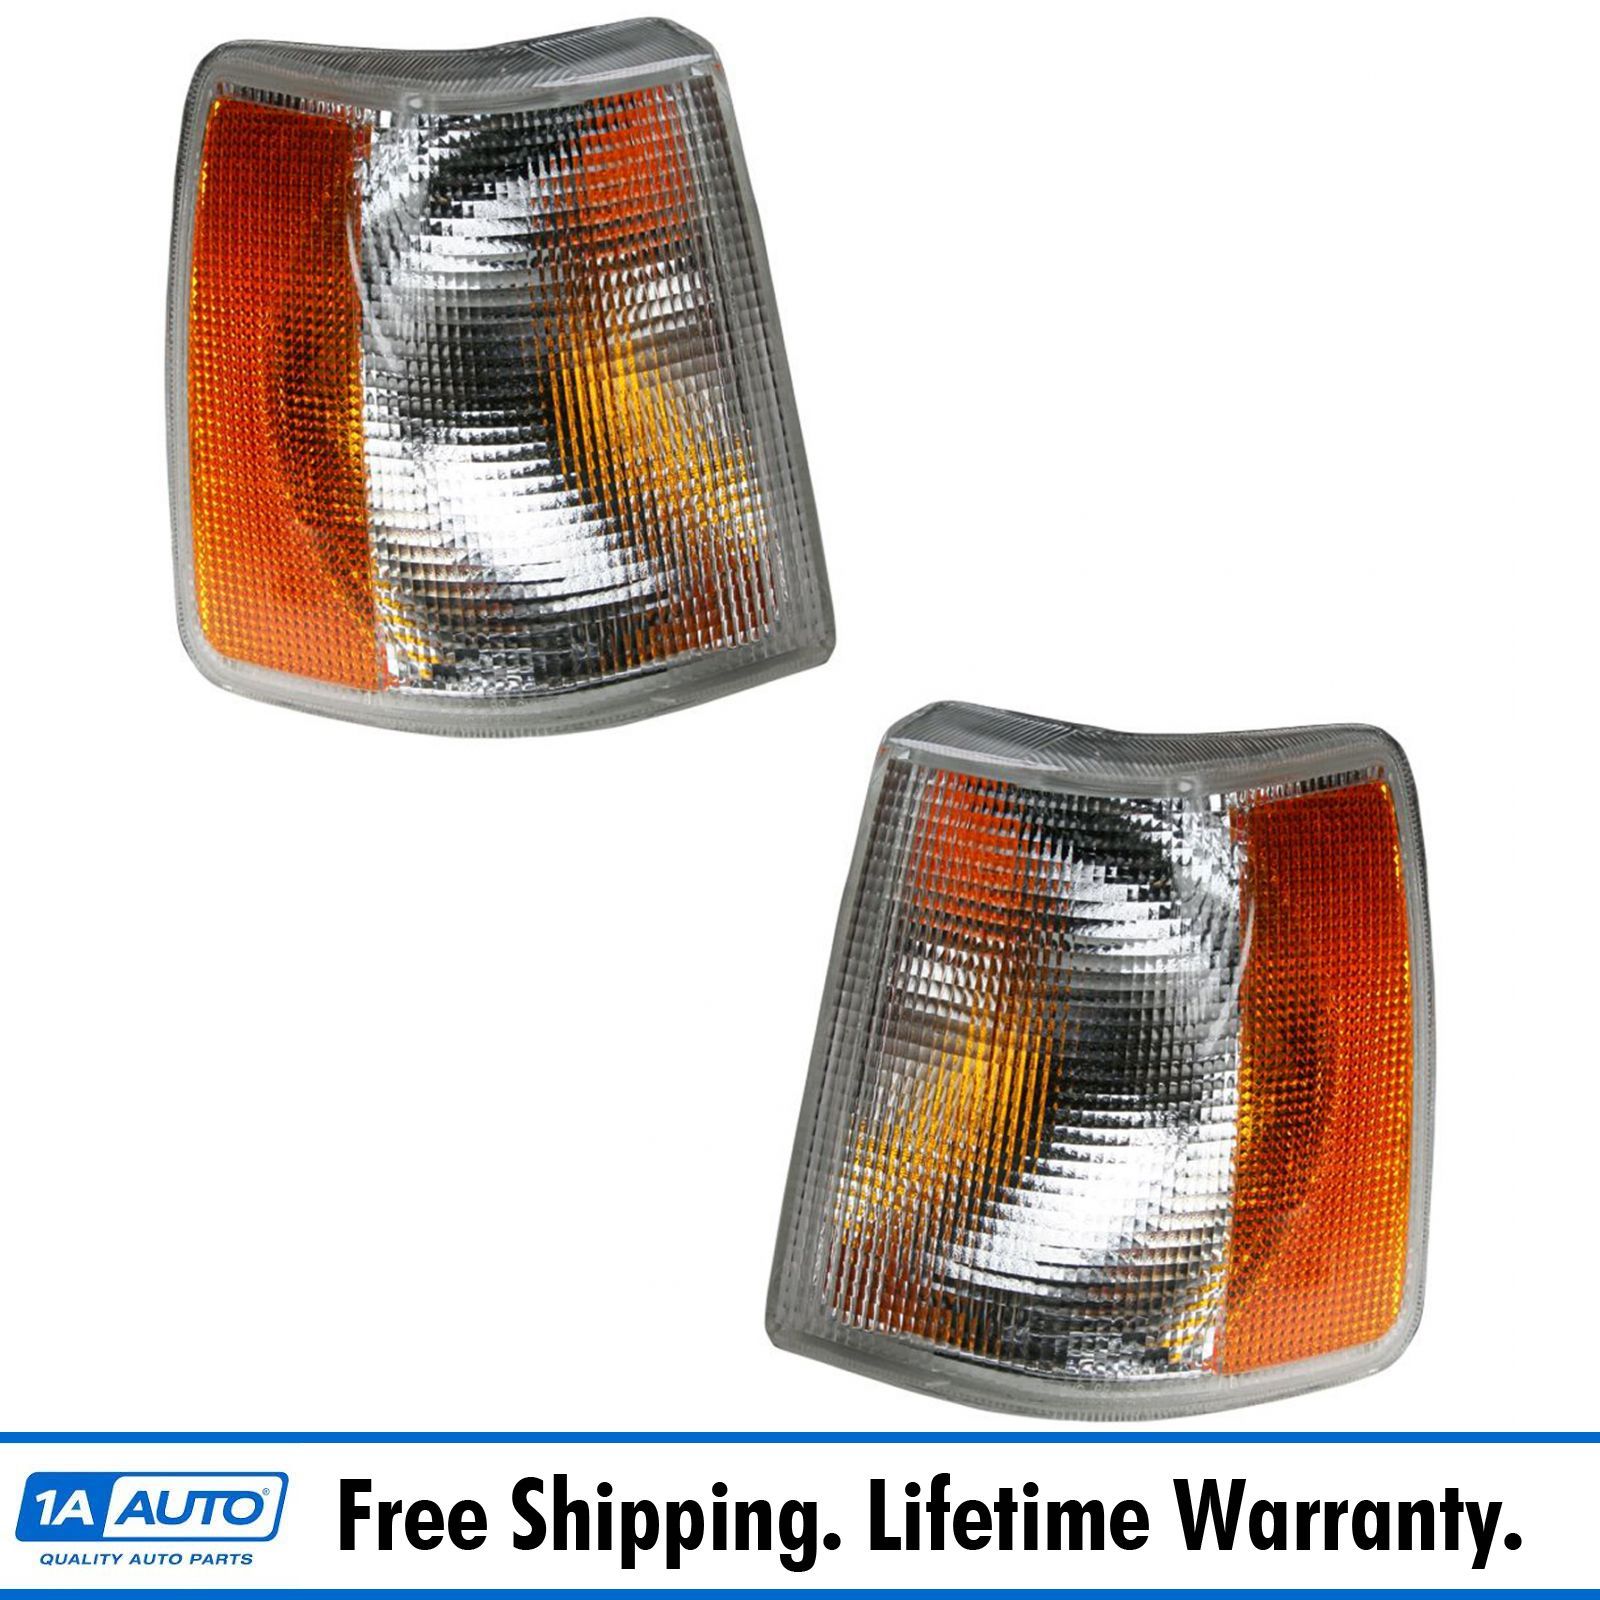 740 Turn Signal Corner Light Lamp Passenger Right Side Replacement VO2521105 960 For 1991 1992 1993 1994 1995 Volvo 940